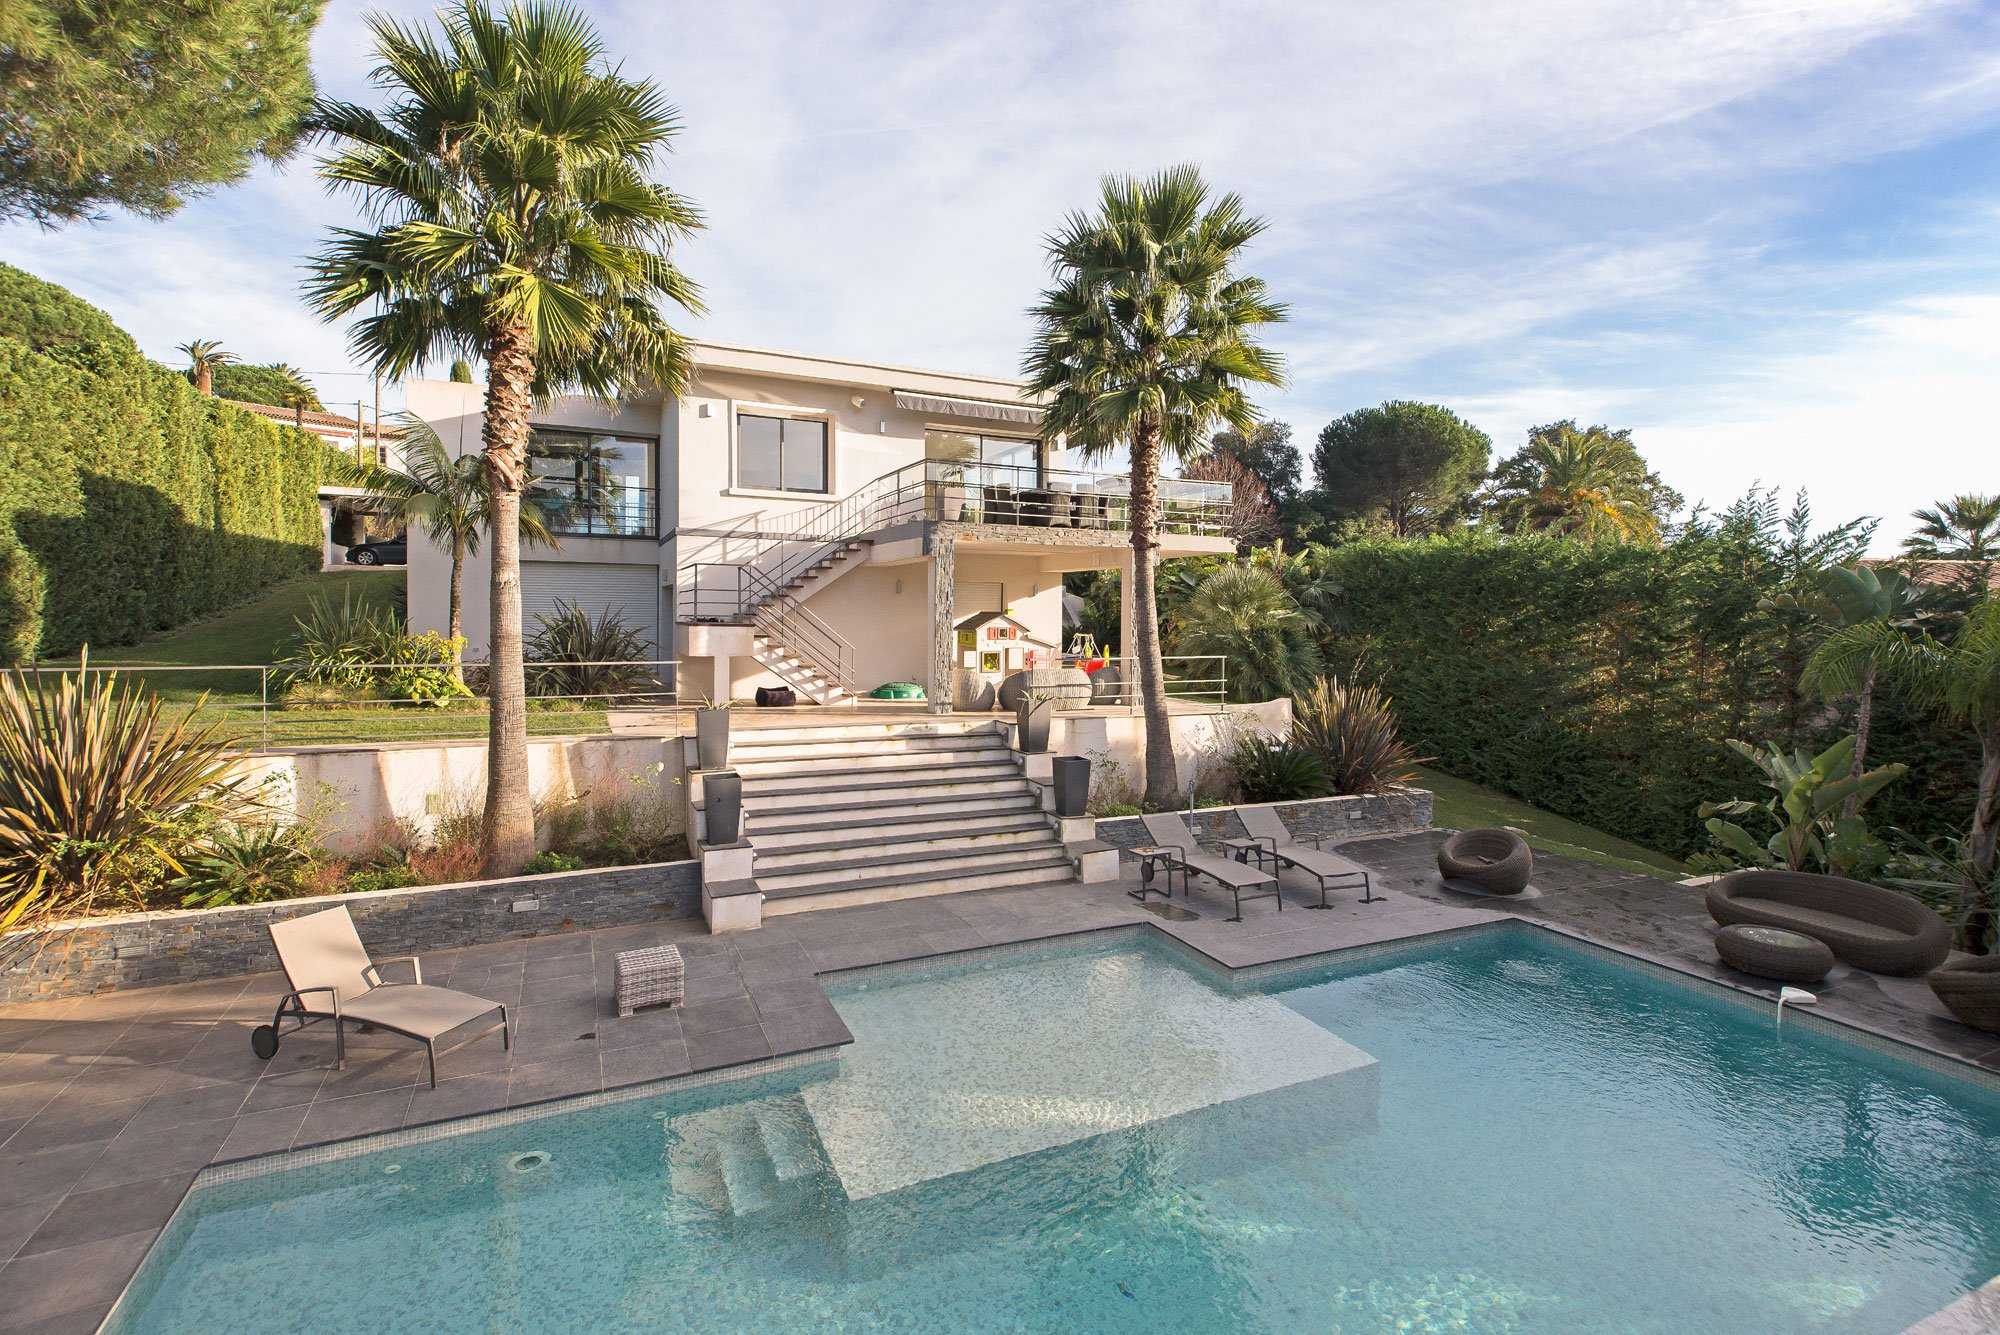 4 Bedrooms, 3,229 sq. ft.Modern villa with terrace and panoramic sea views